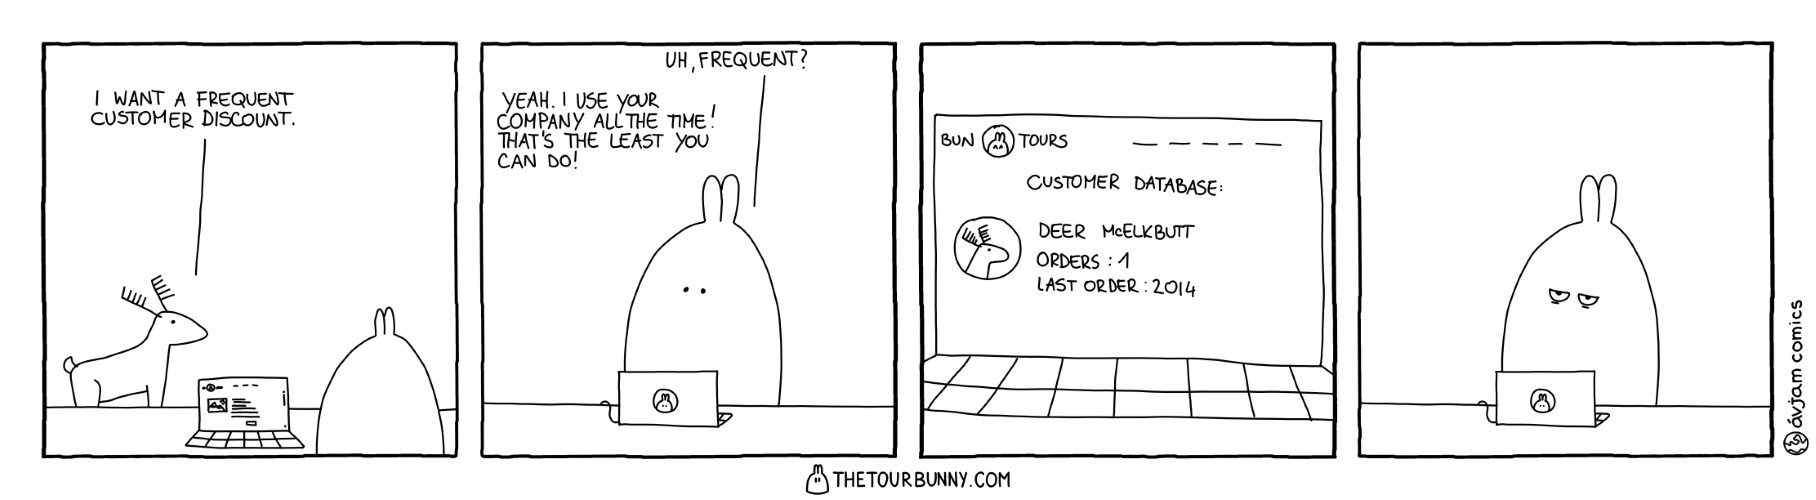 0265 – Frequent Customer